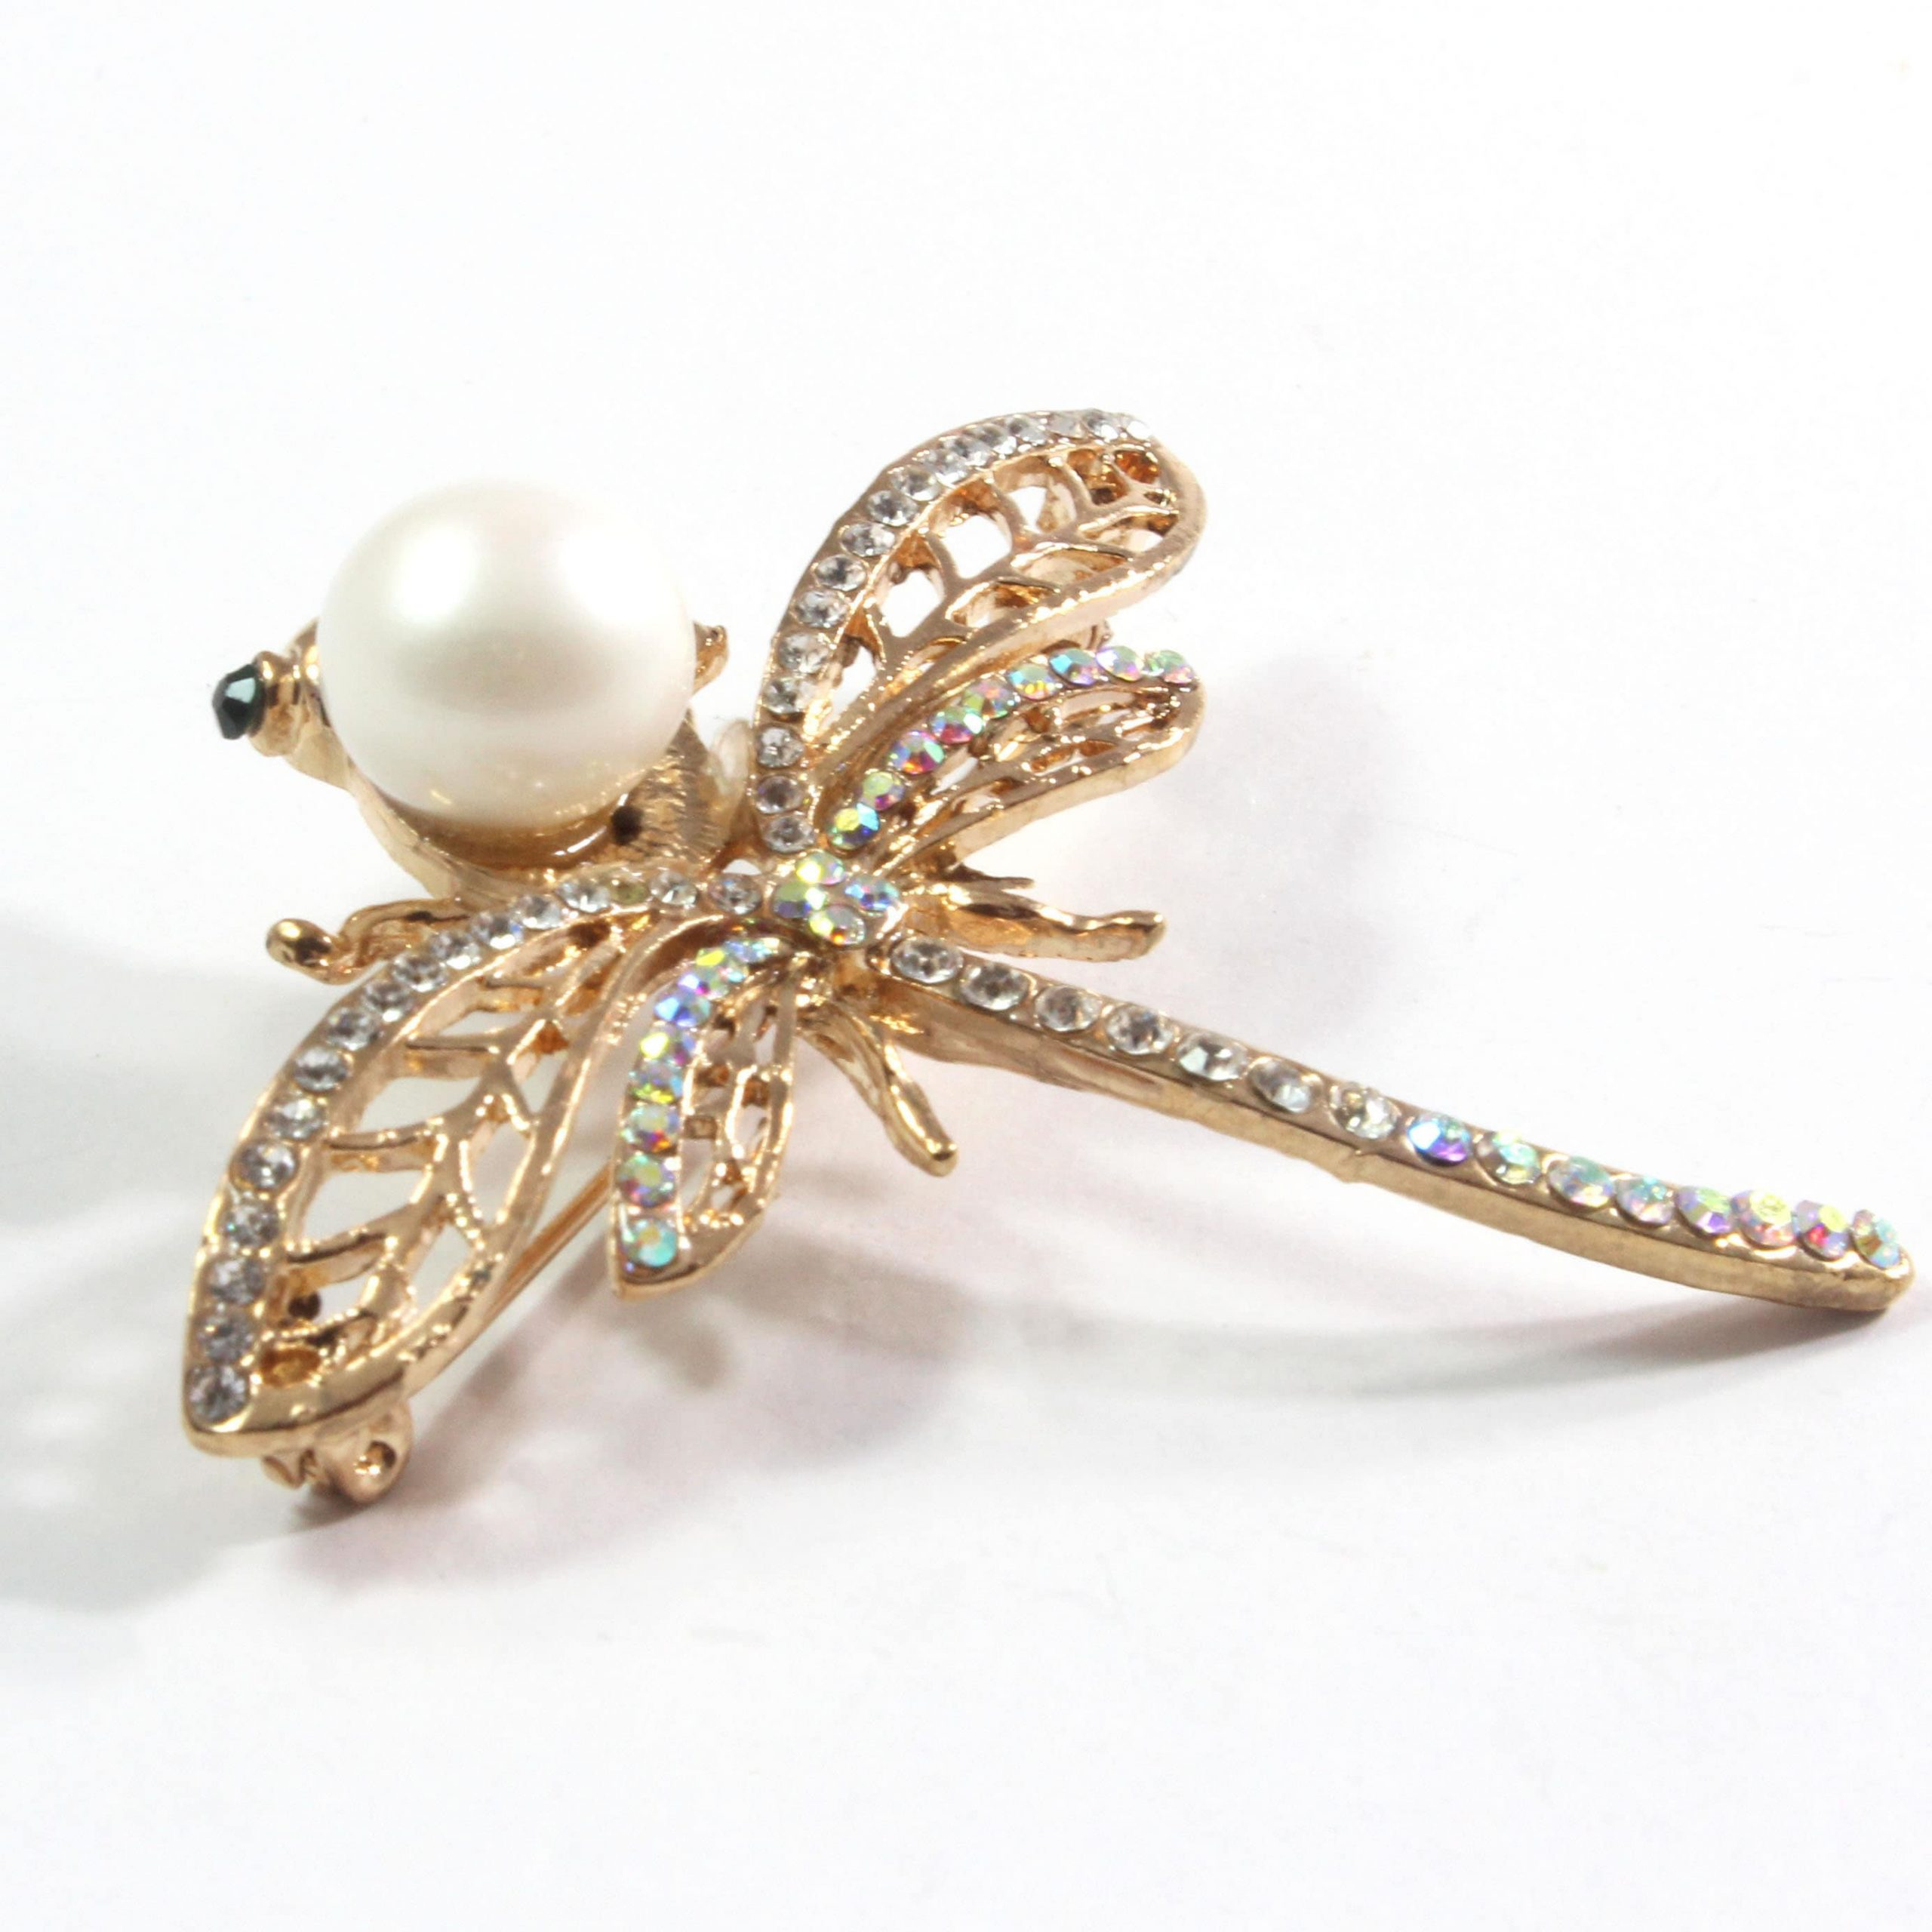 Sparkling Dragonfly White Freshwater Cultured Pearl Brooch 11.5-12.0mm